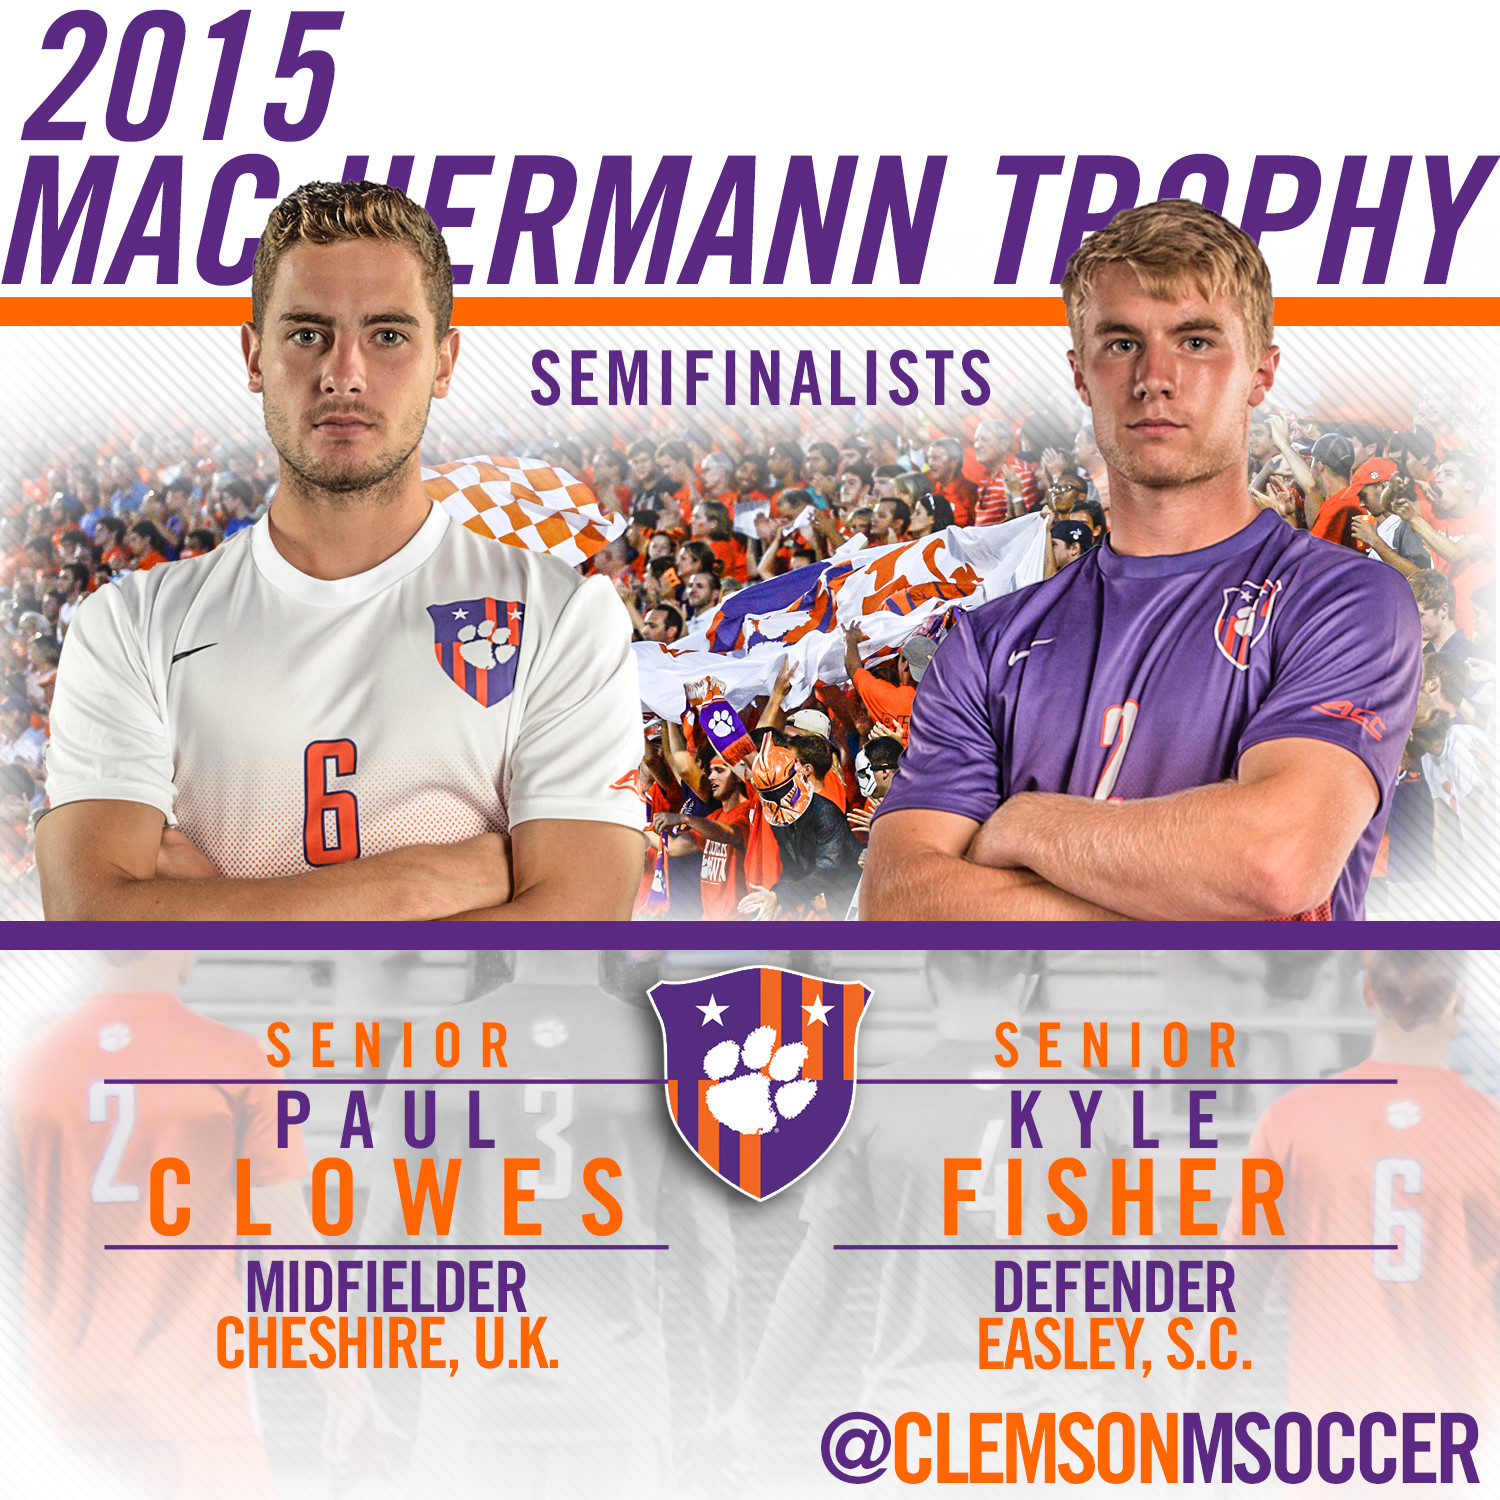 Clowes & Fisher Named Semifinalists for 2015 MAC Hermann Trophy